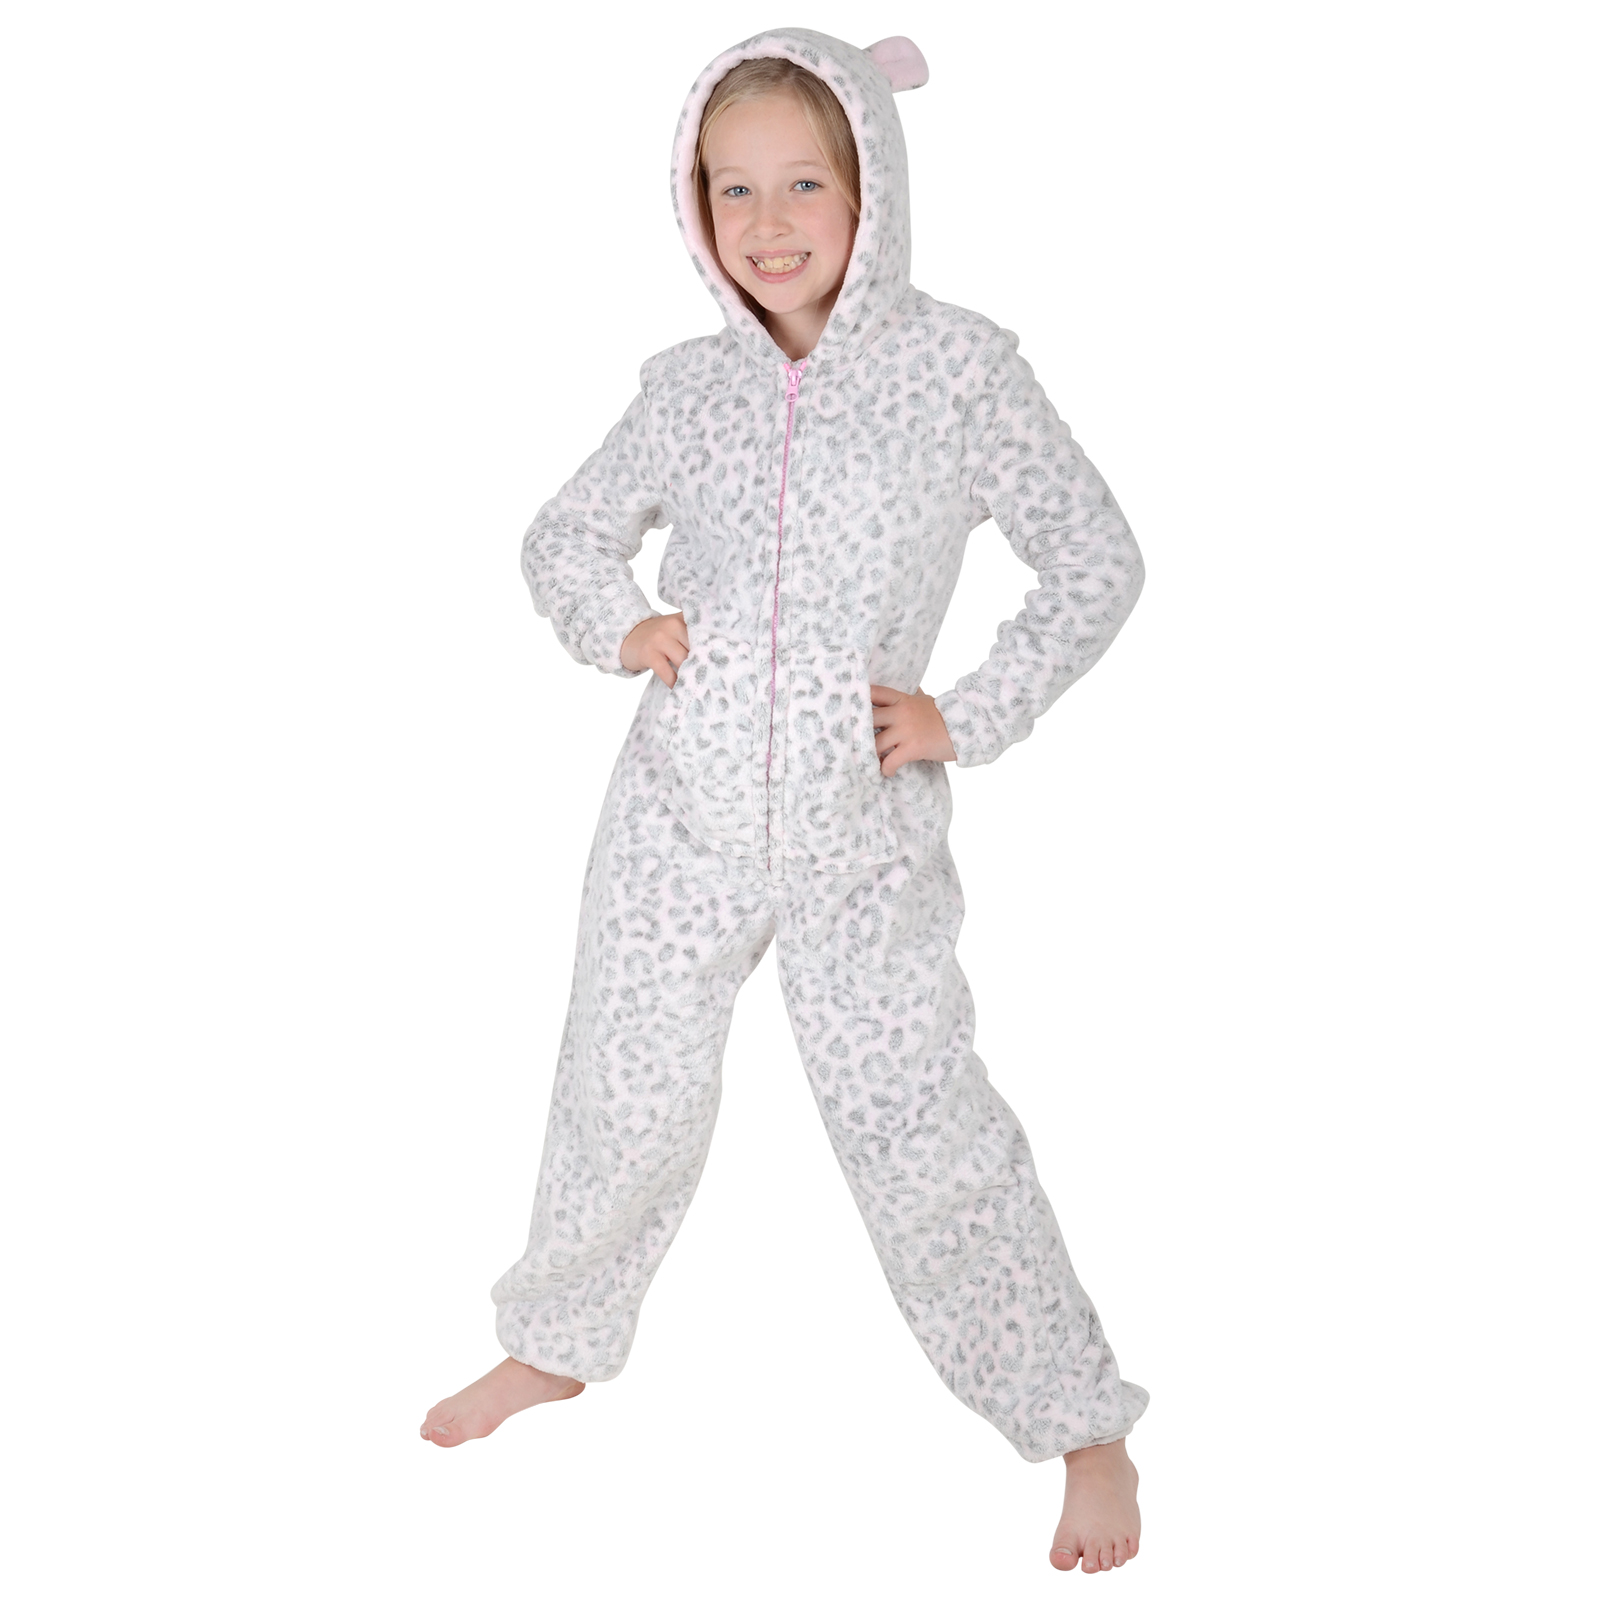 Girls in onesies Young